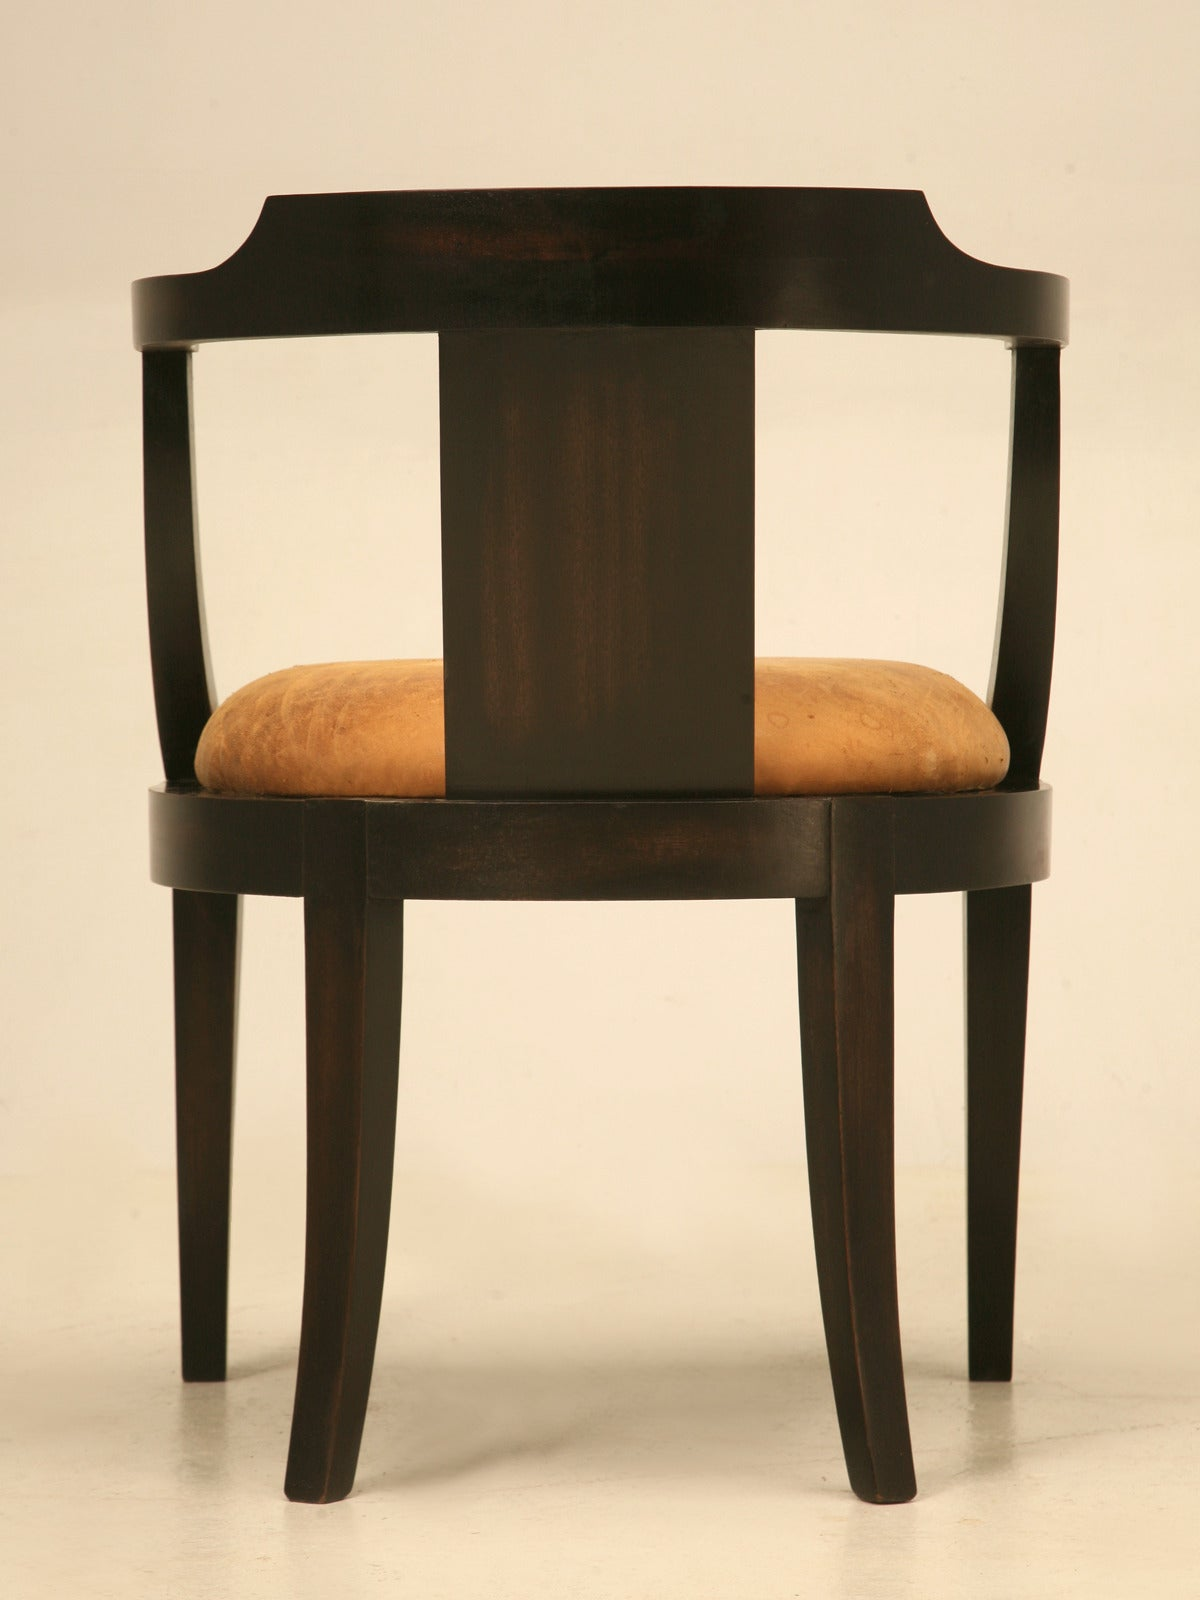 french ebonized mahogany antique desk chair with a leather seat cushion for sale at 1stdibs. Black Bedroom Furniture Sets. Home Design Ideas